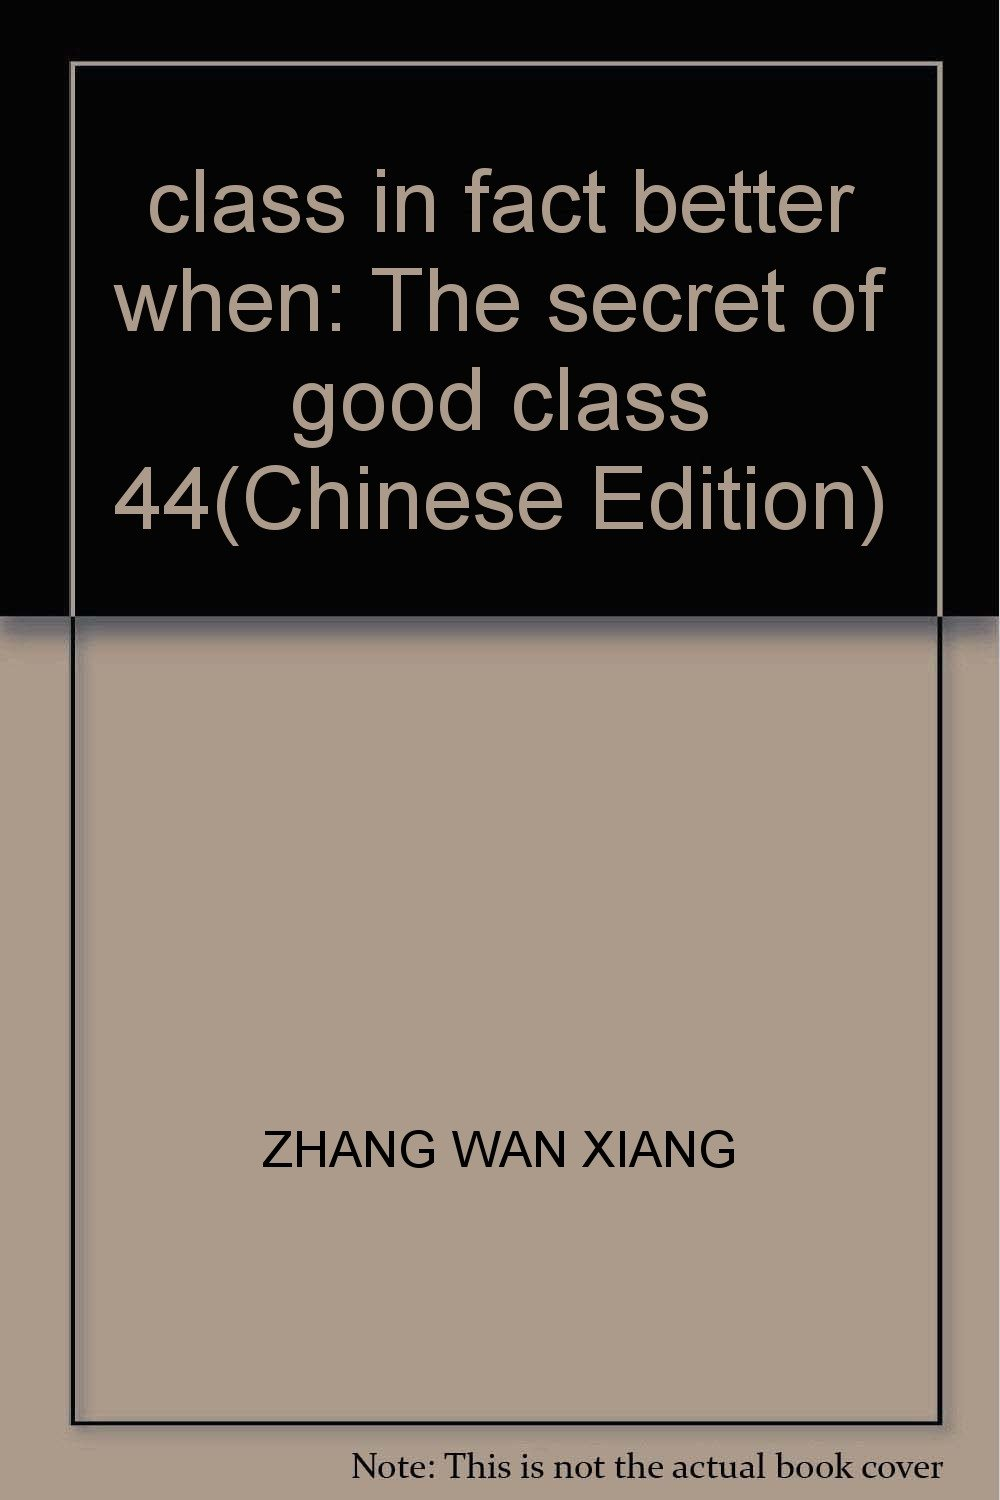 Download class in fact better when: The secret of good class 44(Chinese Edition) pdf